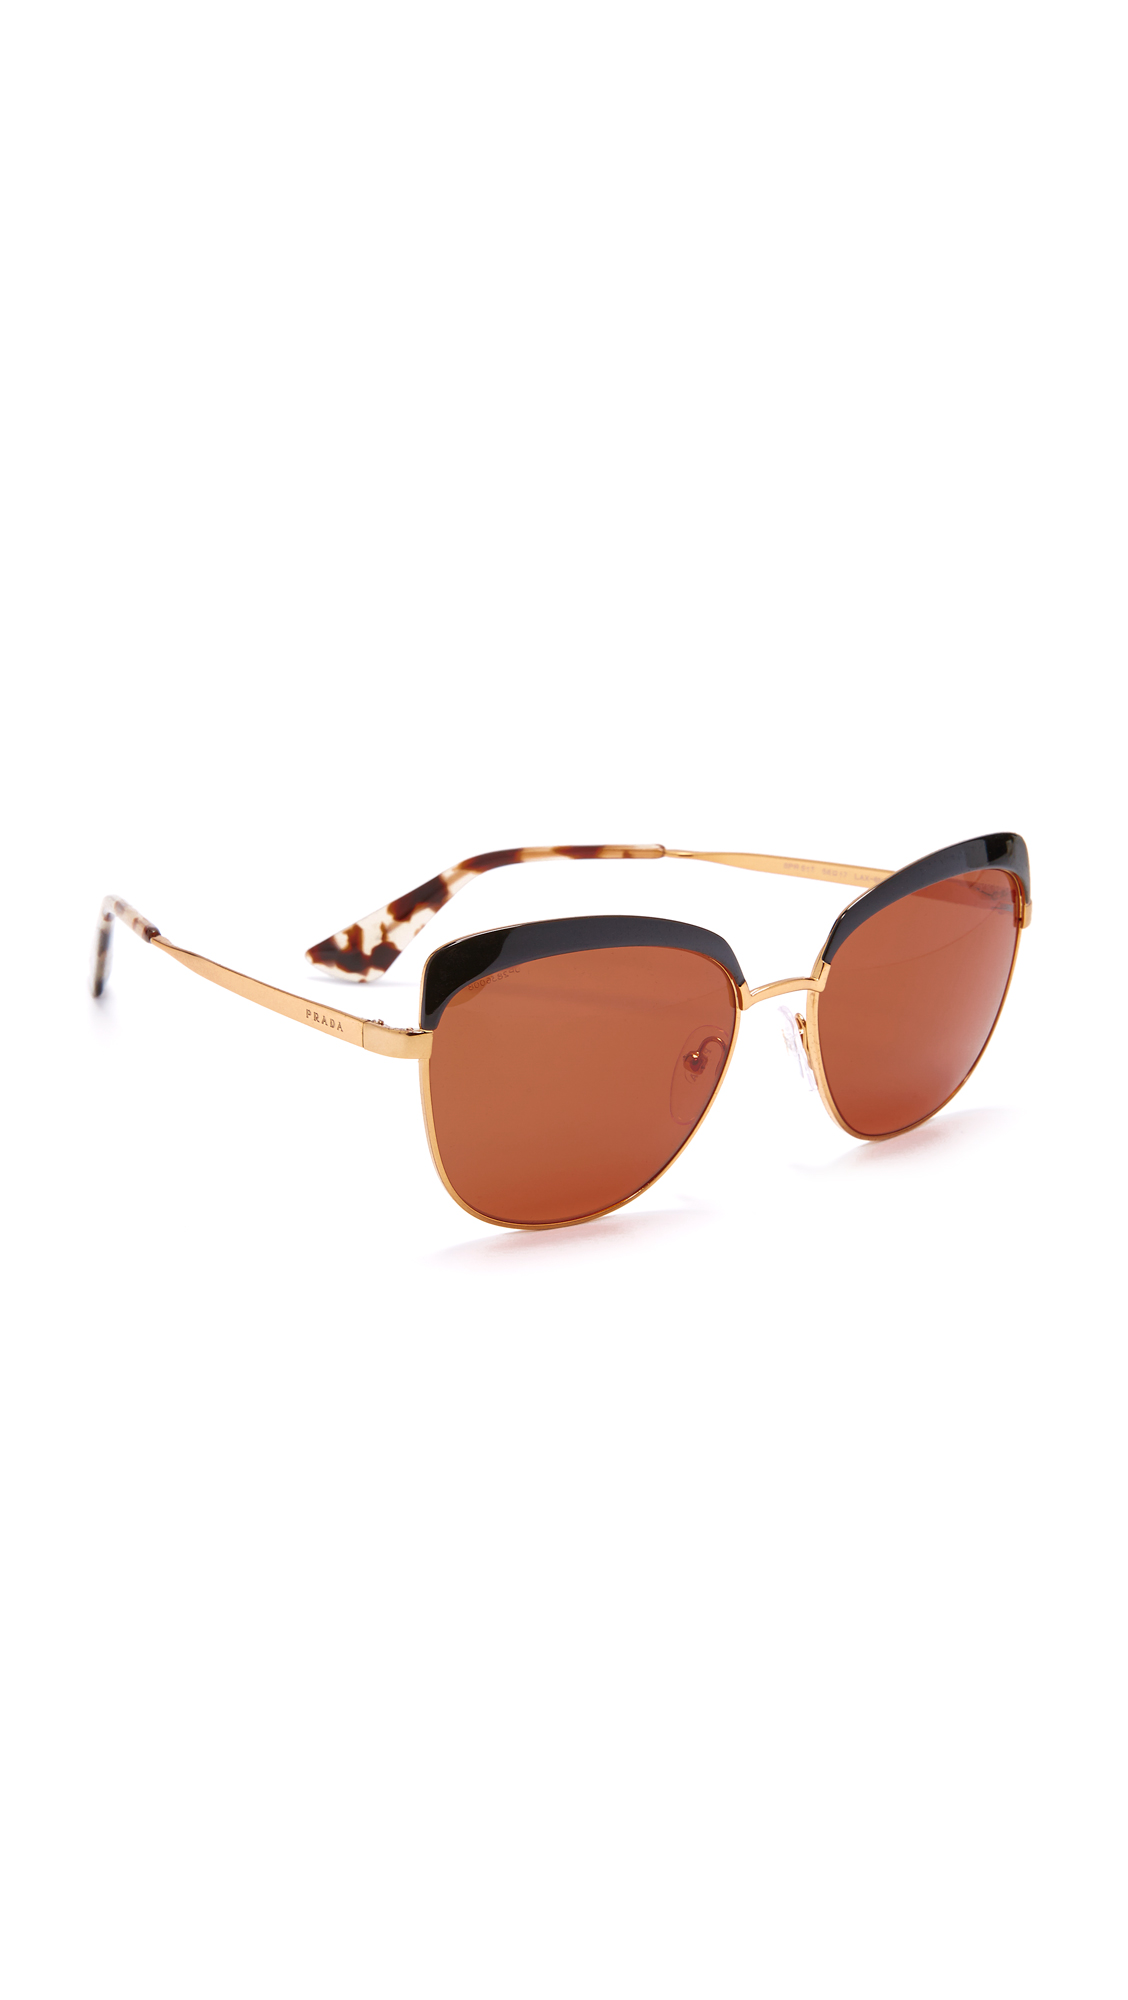 Prada Brow Cat Eye Sunglasses - Black/Brown at Shopbop